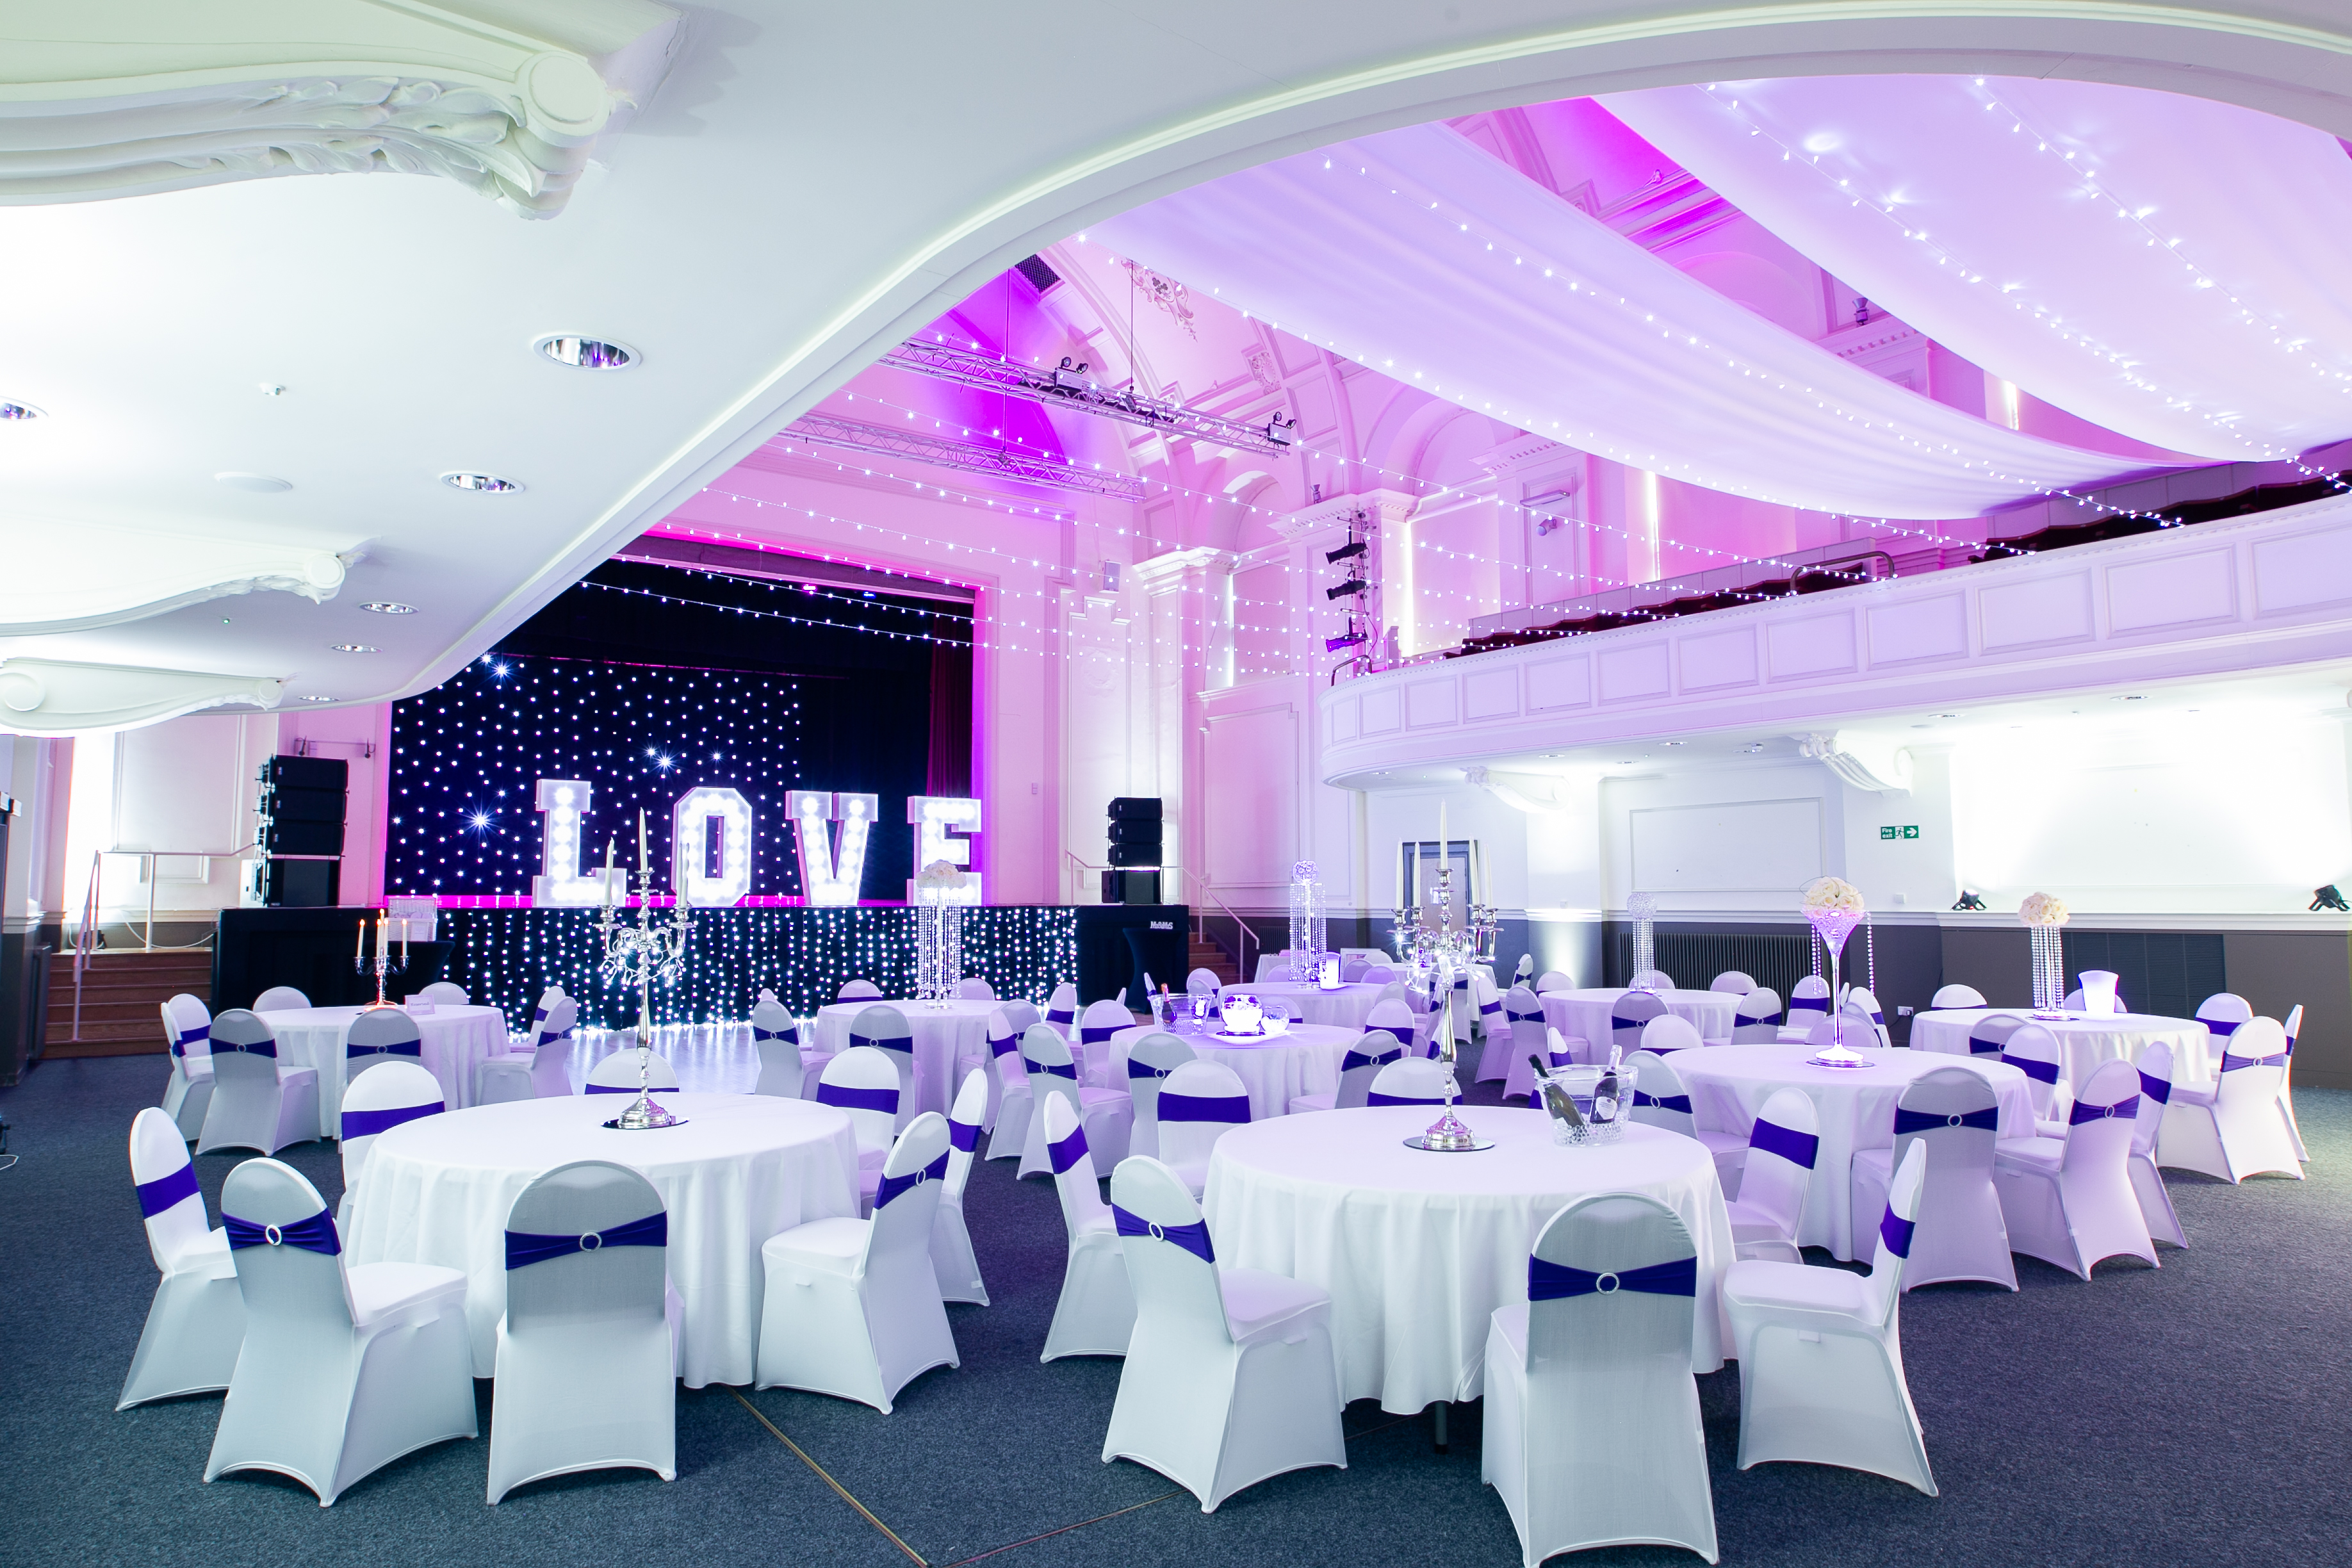 image of Grand Hall - with LOVE on the stage